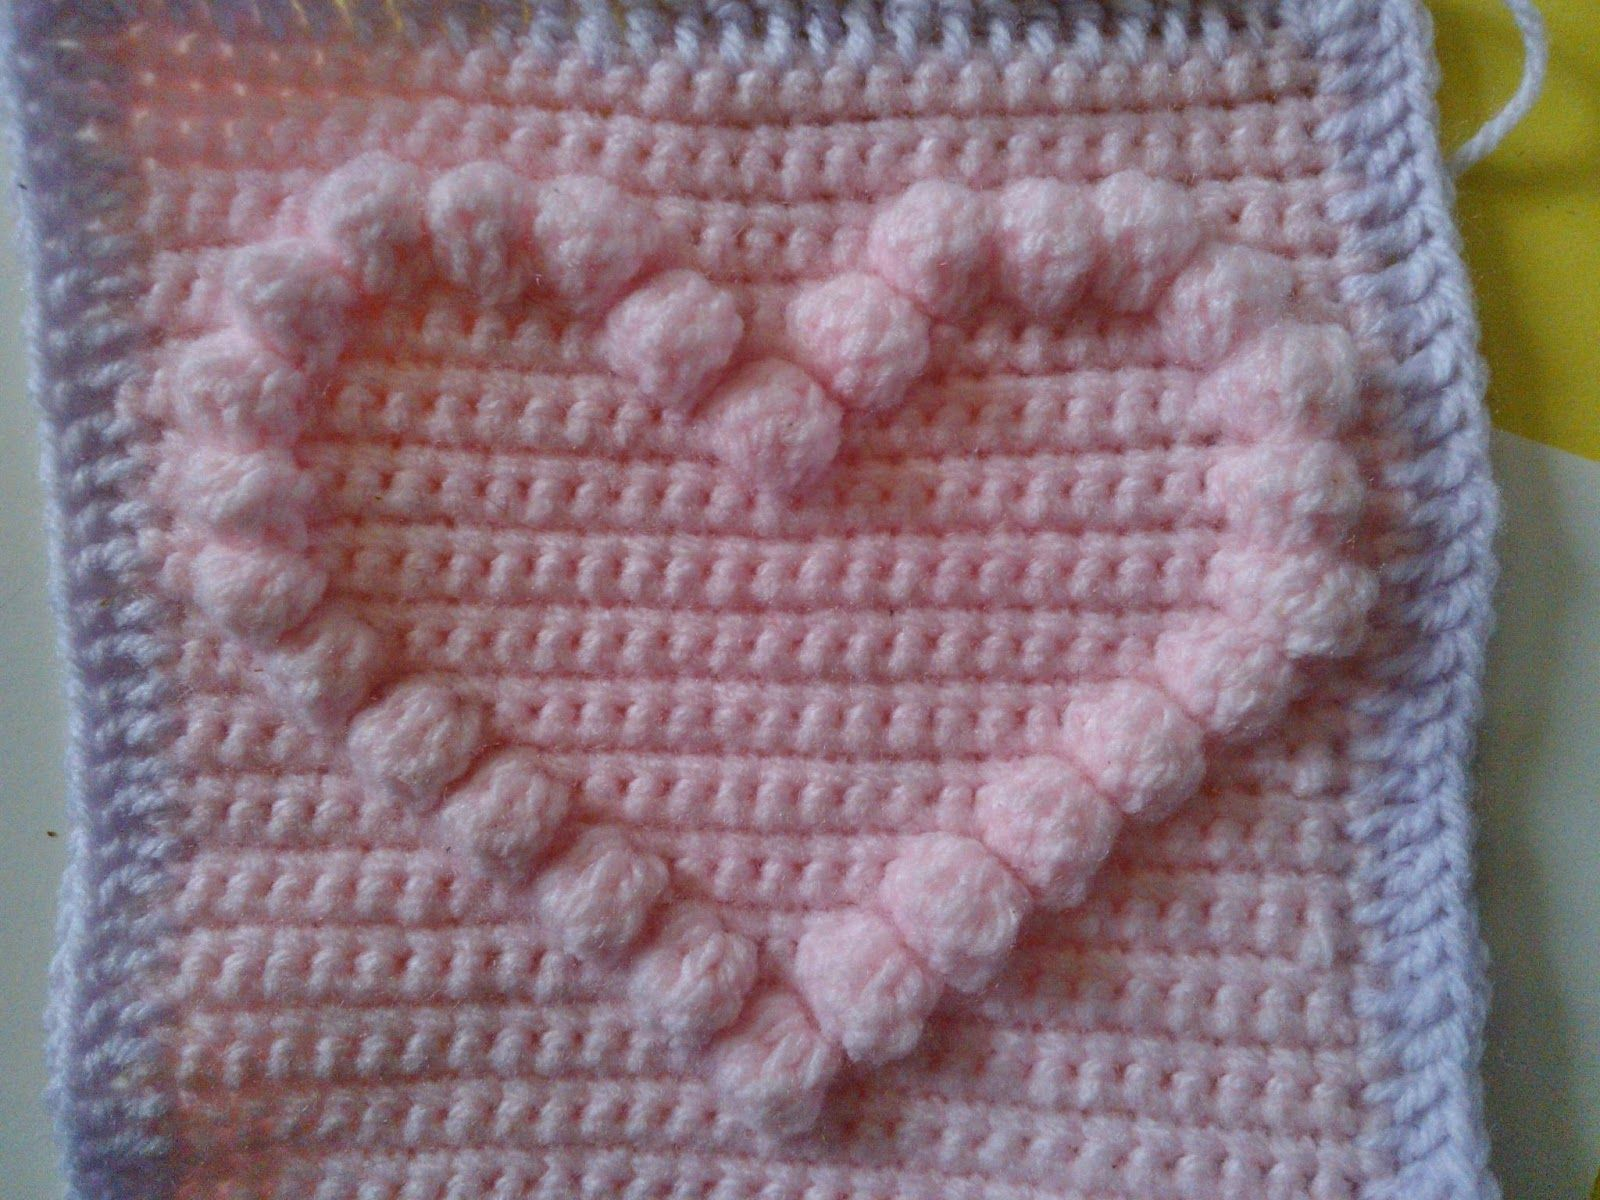 Crochet Bobble Heart Pattern Granny Square Video Tutorial